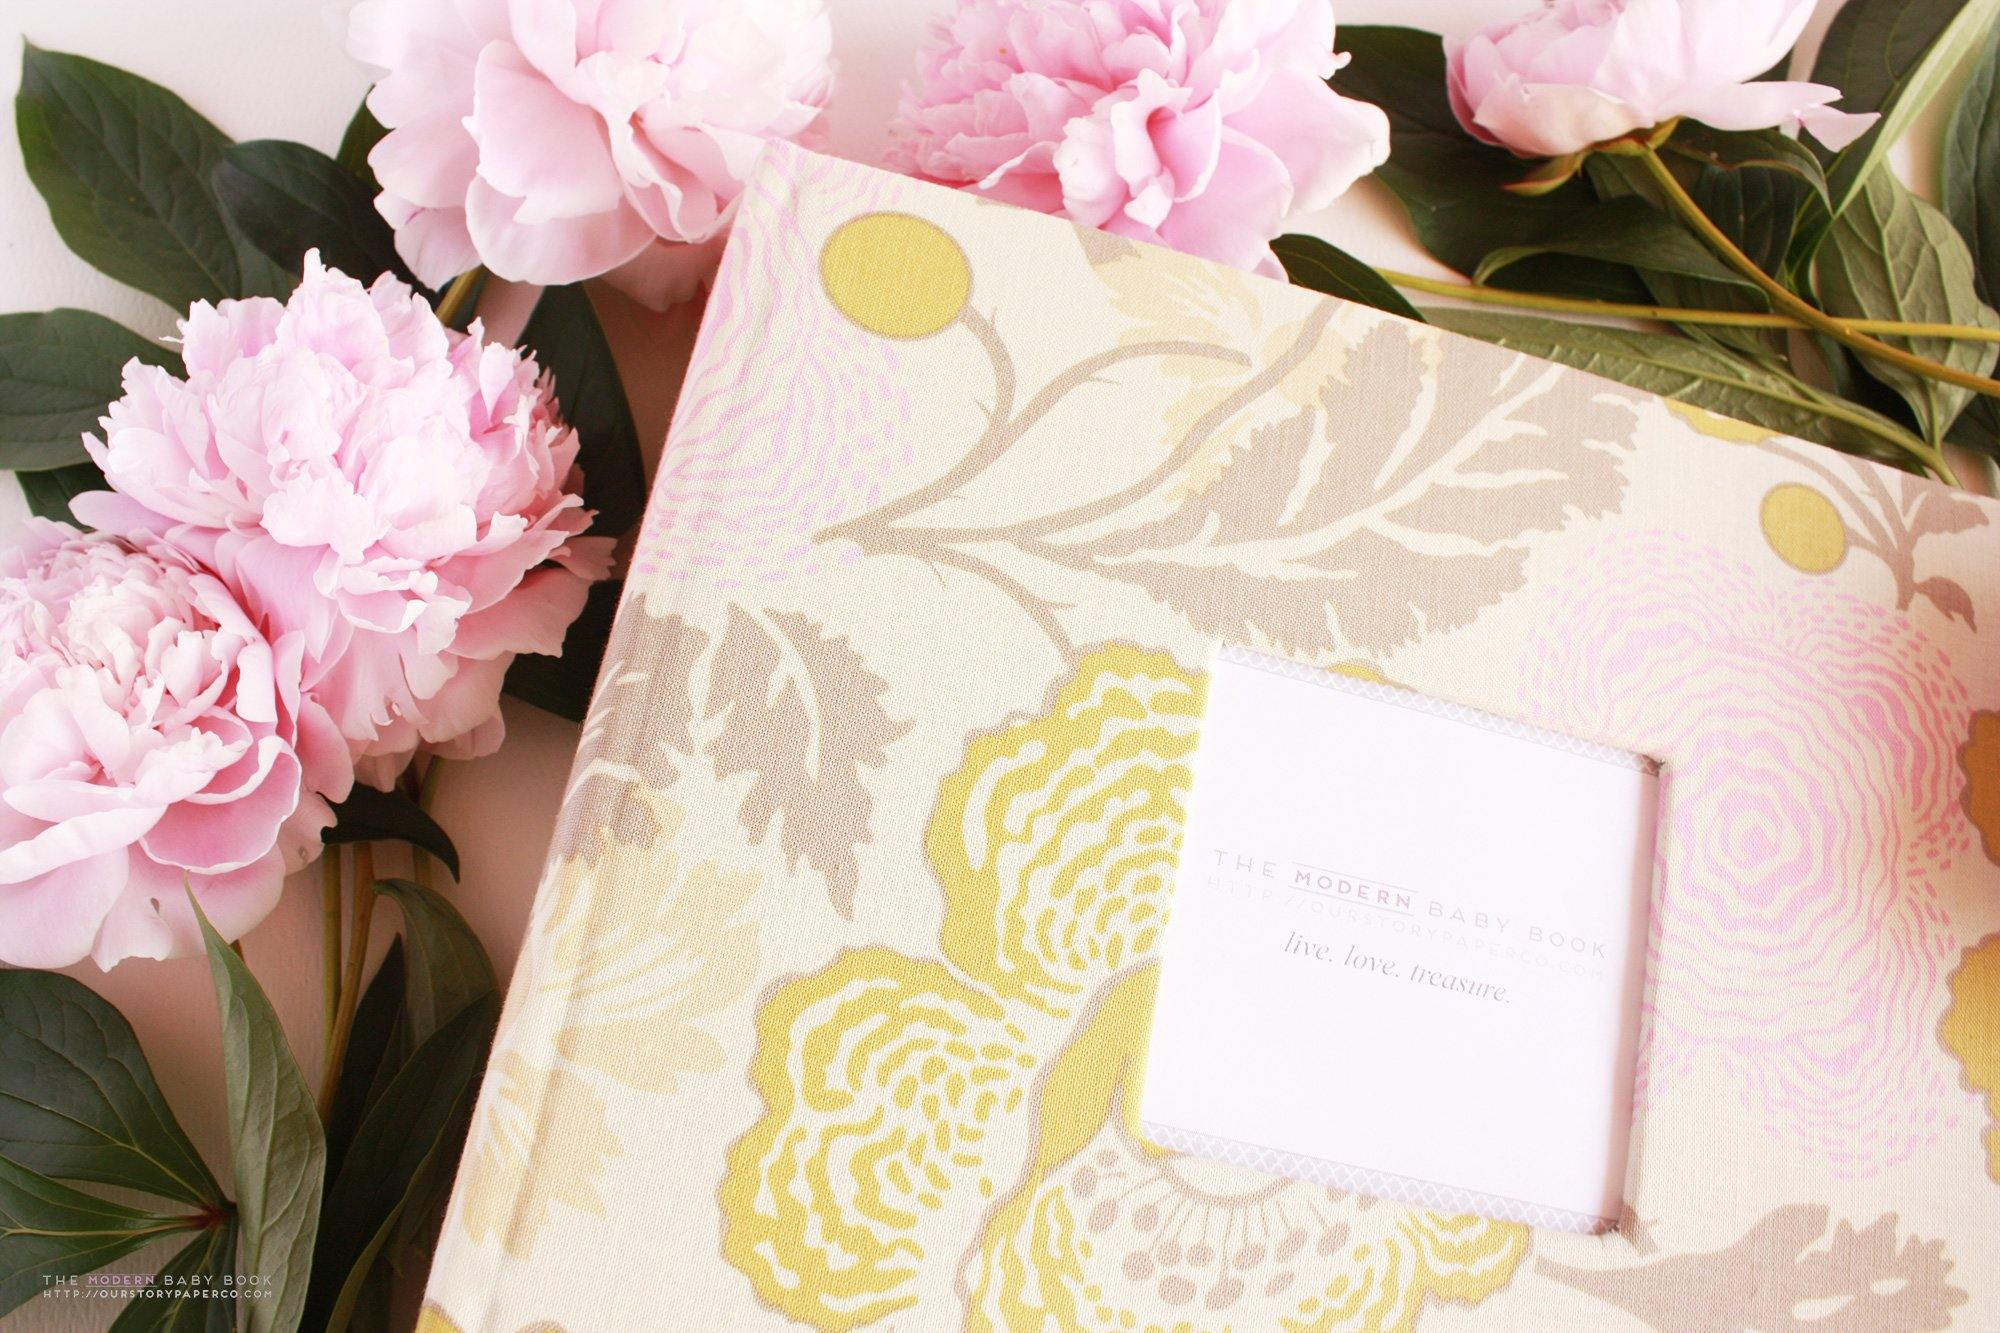 Peony Floral Keepsake Album - Our Story Paper Co.